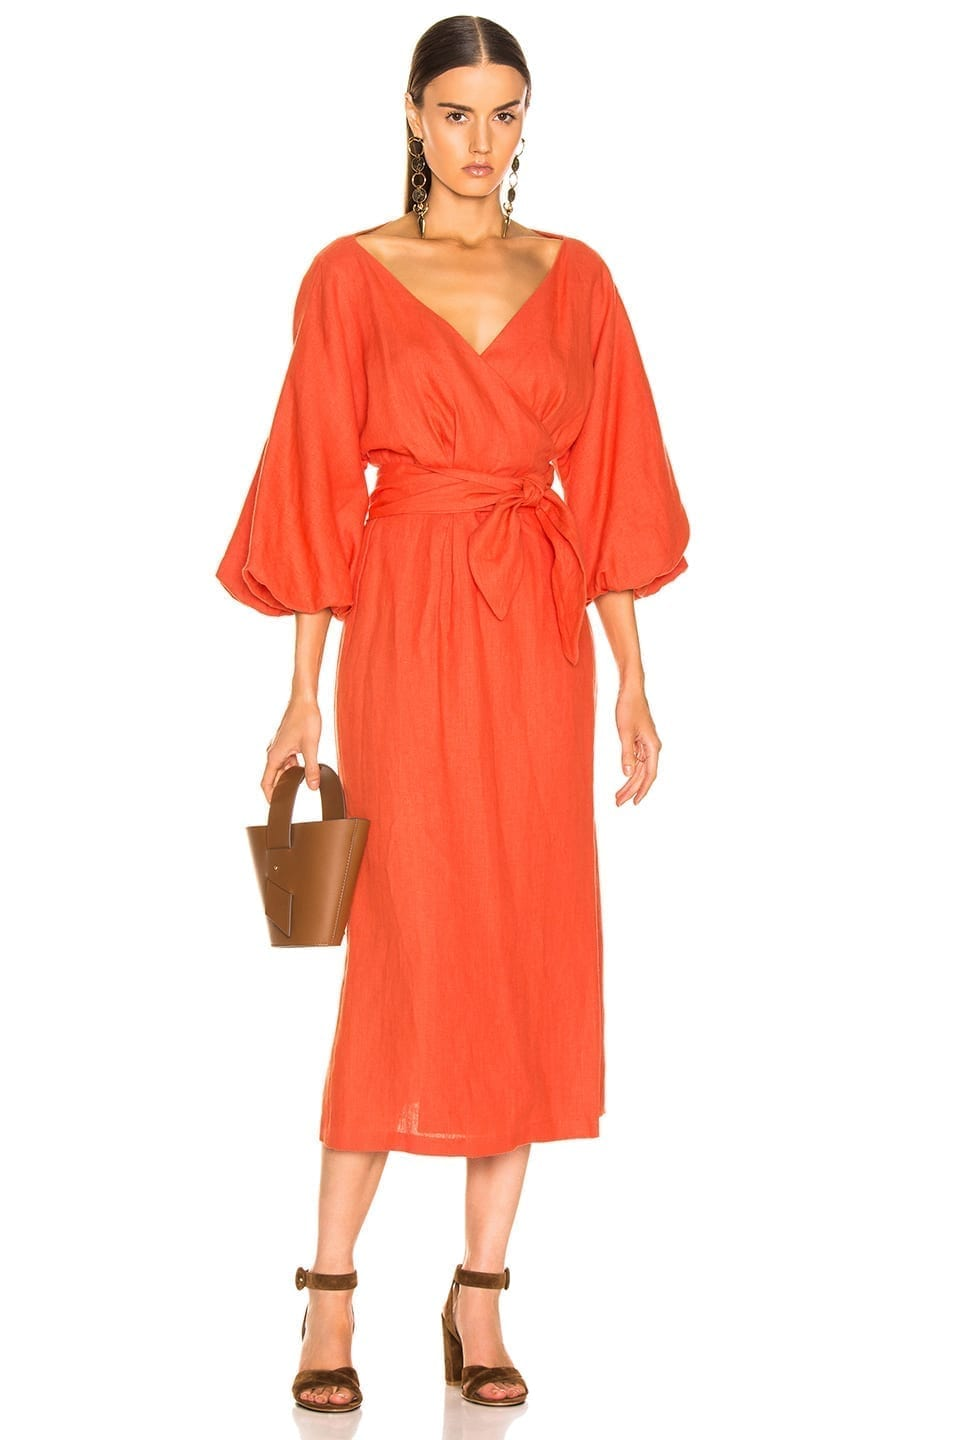 MARA HOFFMAN Francesca Orange Dress